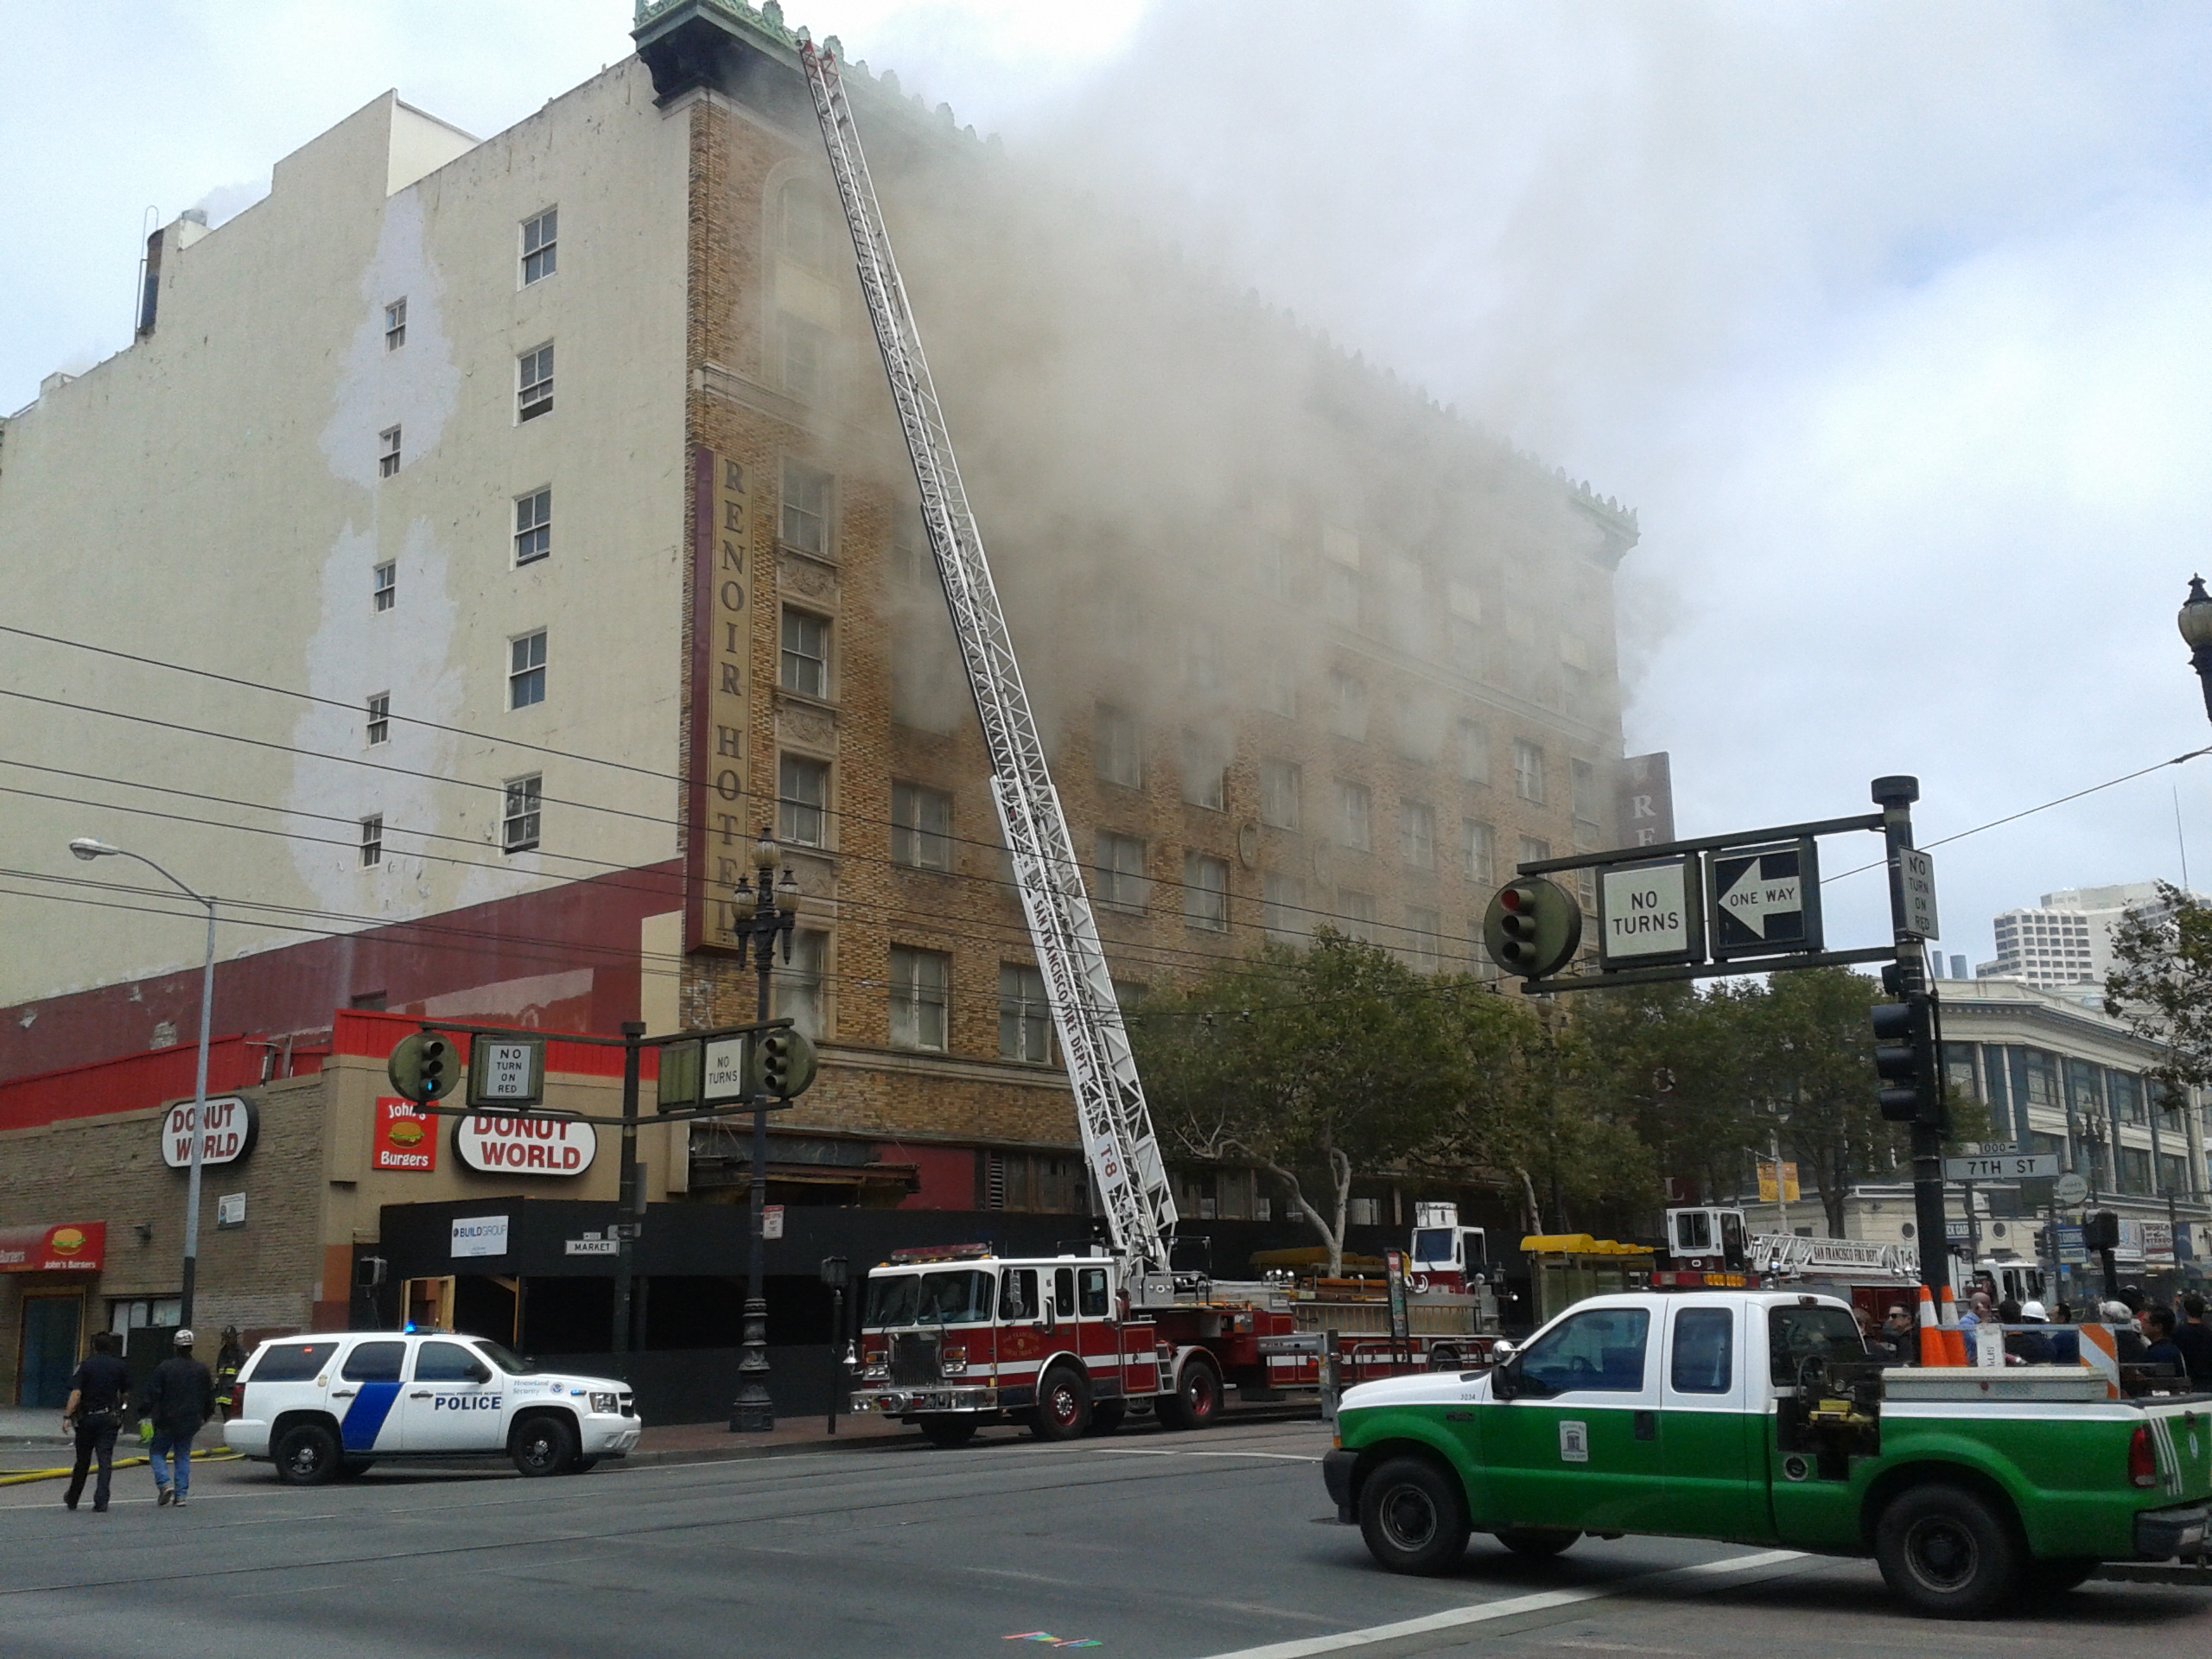 Welding Sparks May Have Caused S.F. Mid-Market Fire in Old Hotel